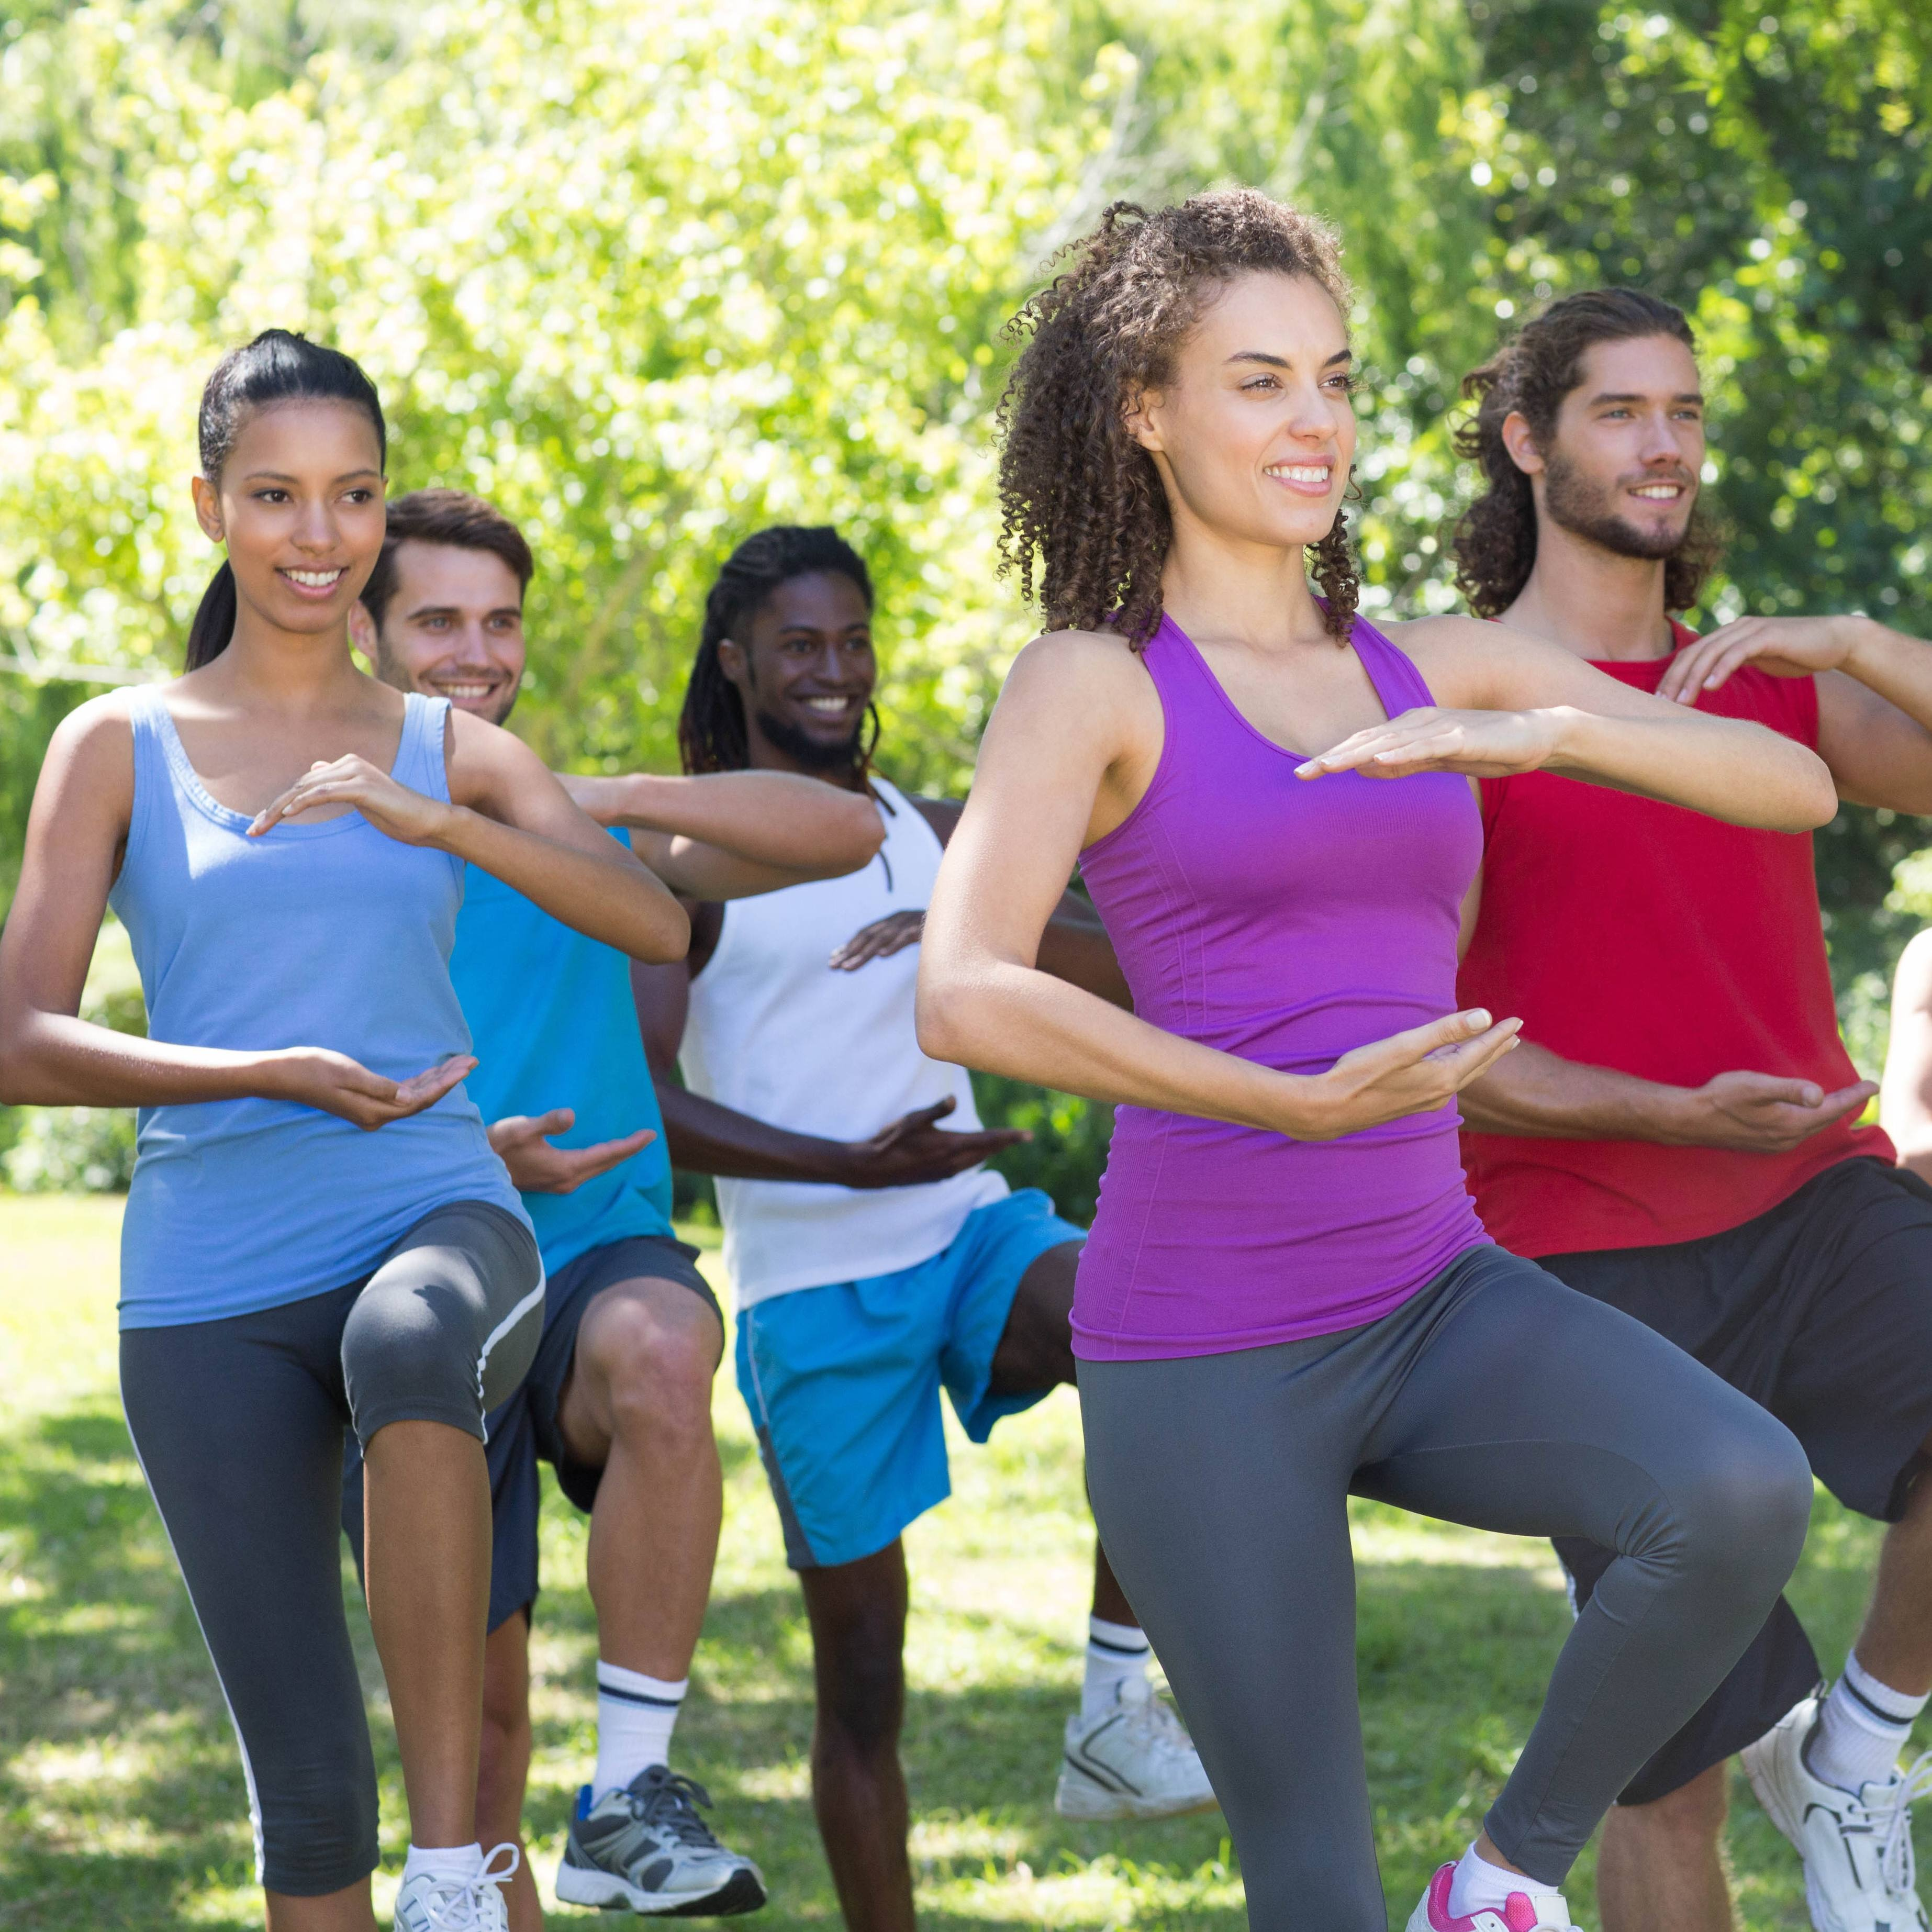 a group of people, athletes outside in a park stretching and exercising, perhaps doing yoga or Tai chi